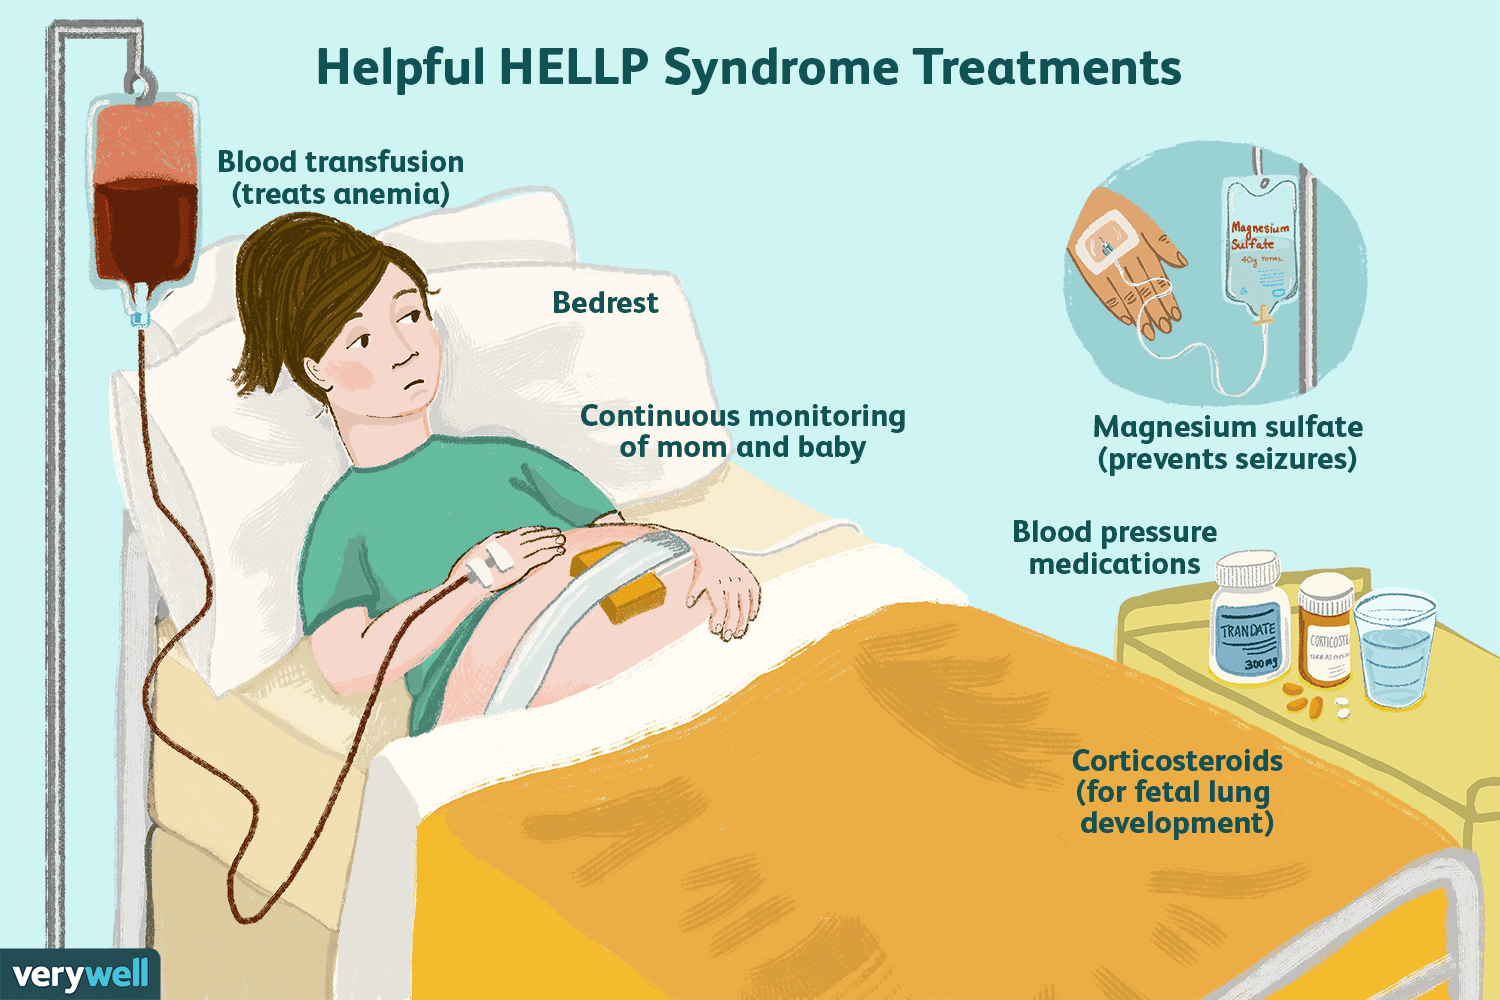 Helpful HELLP syndrome treatments